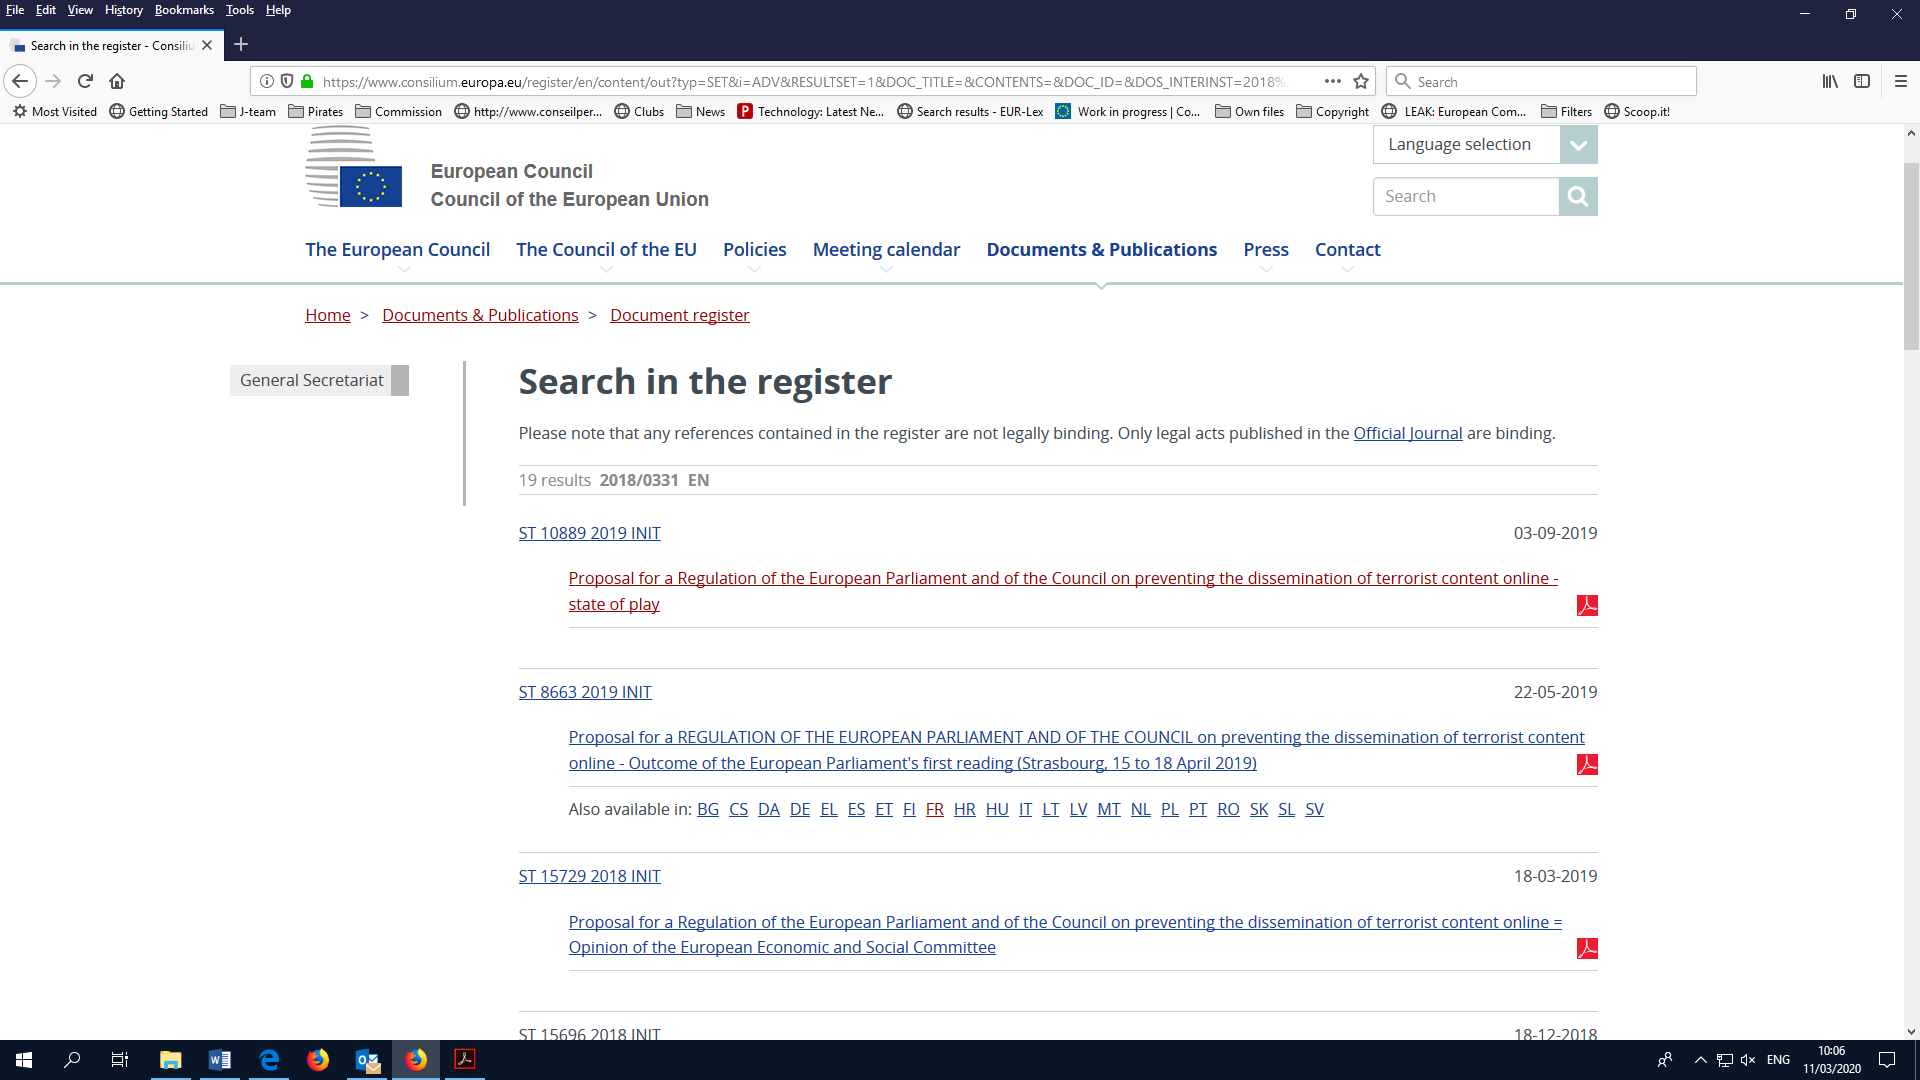 Search result in Council's document register